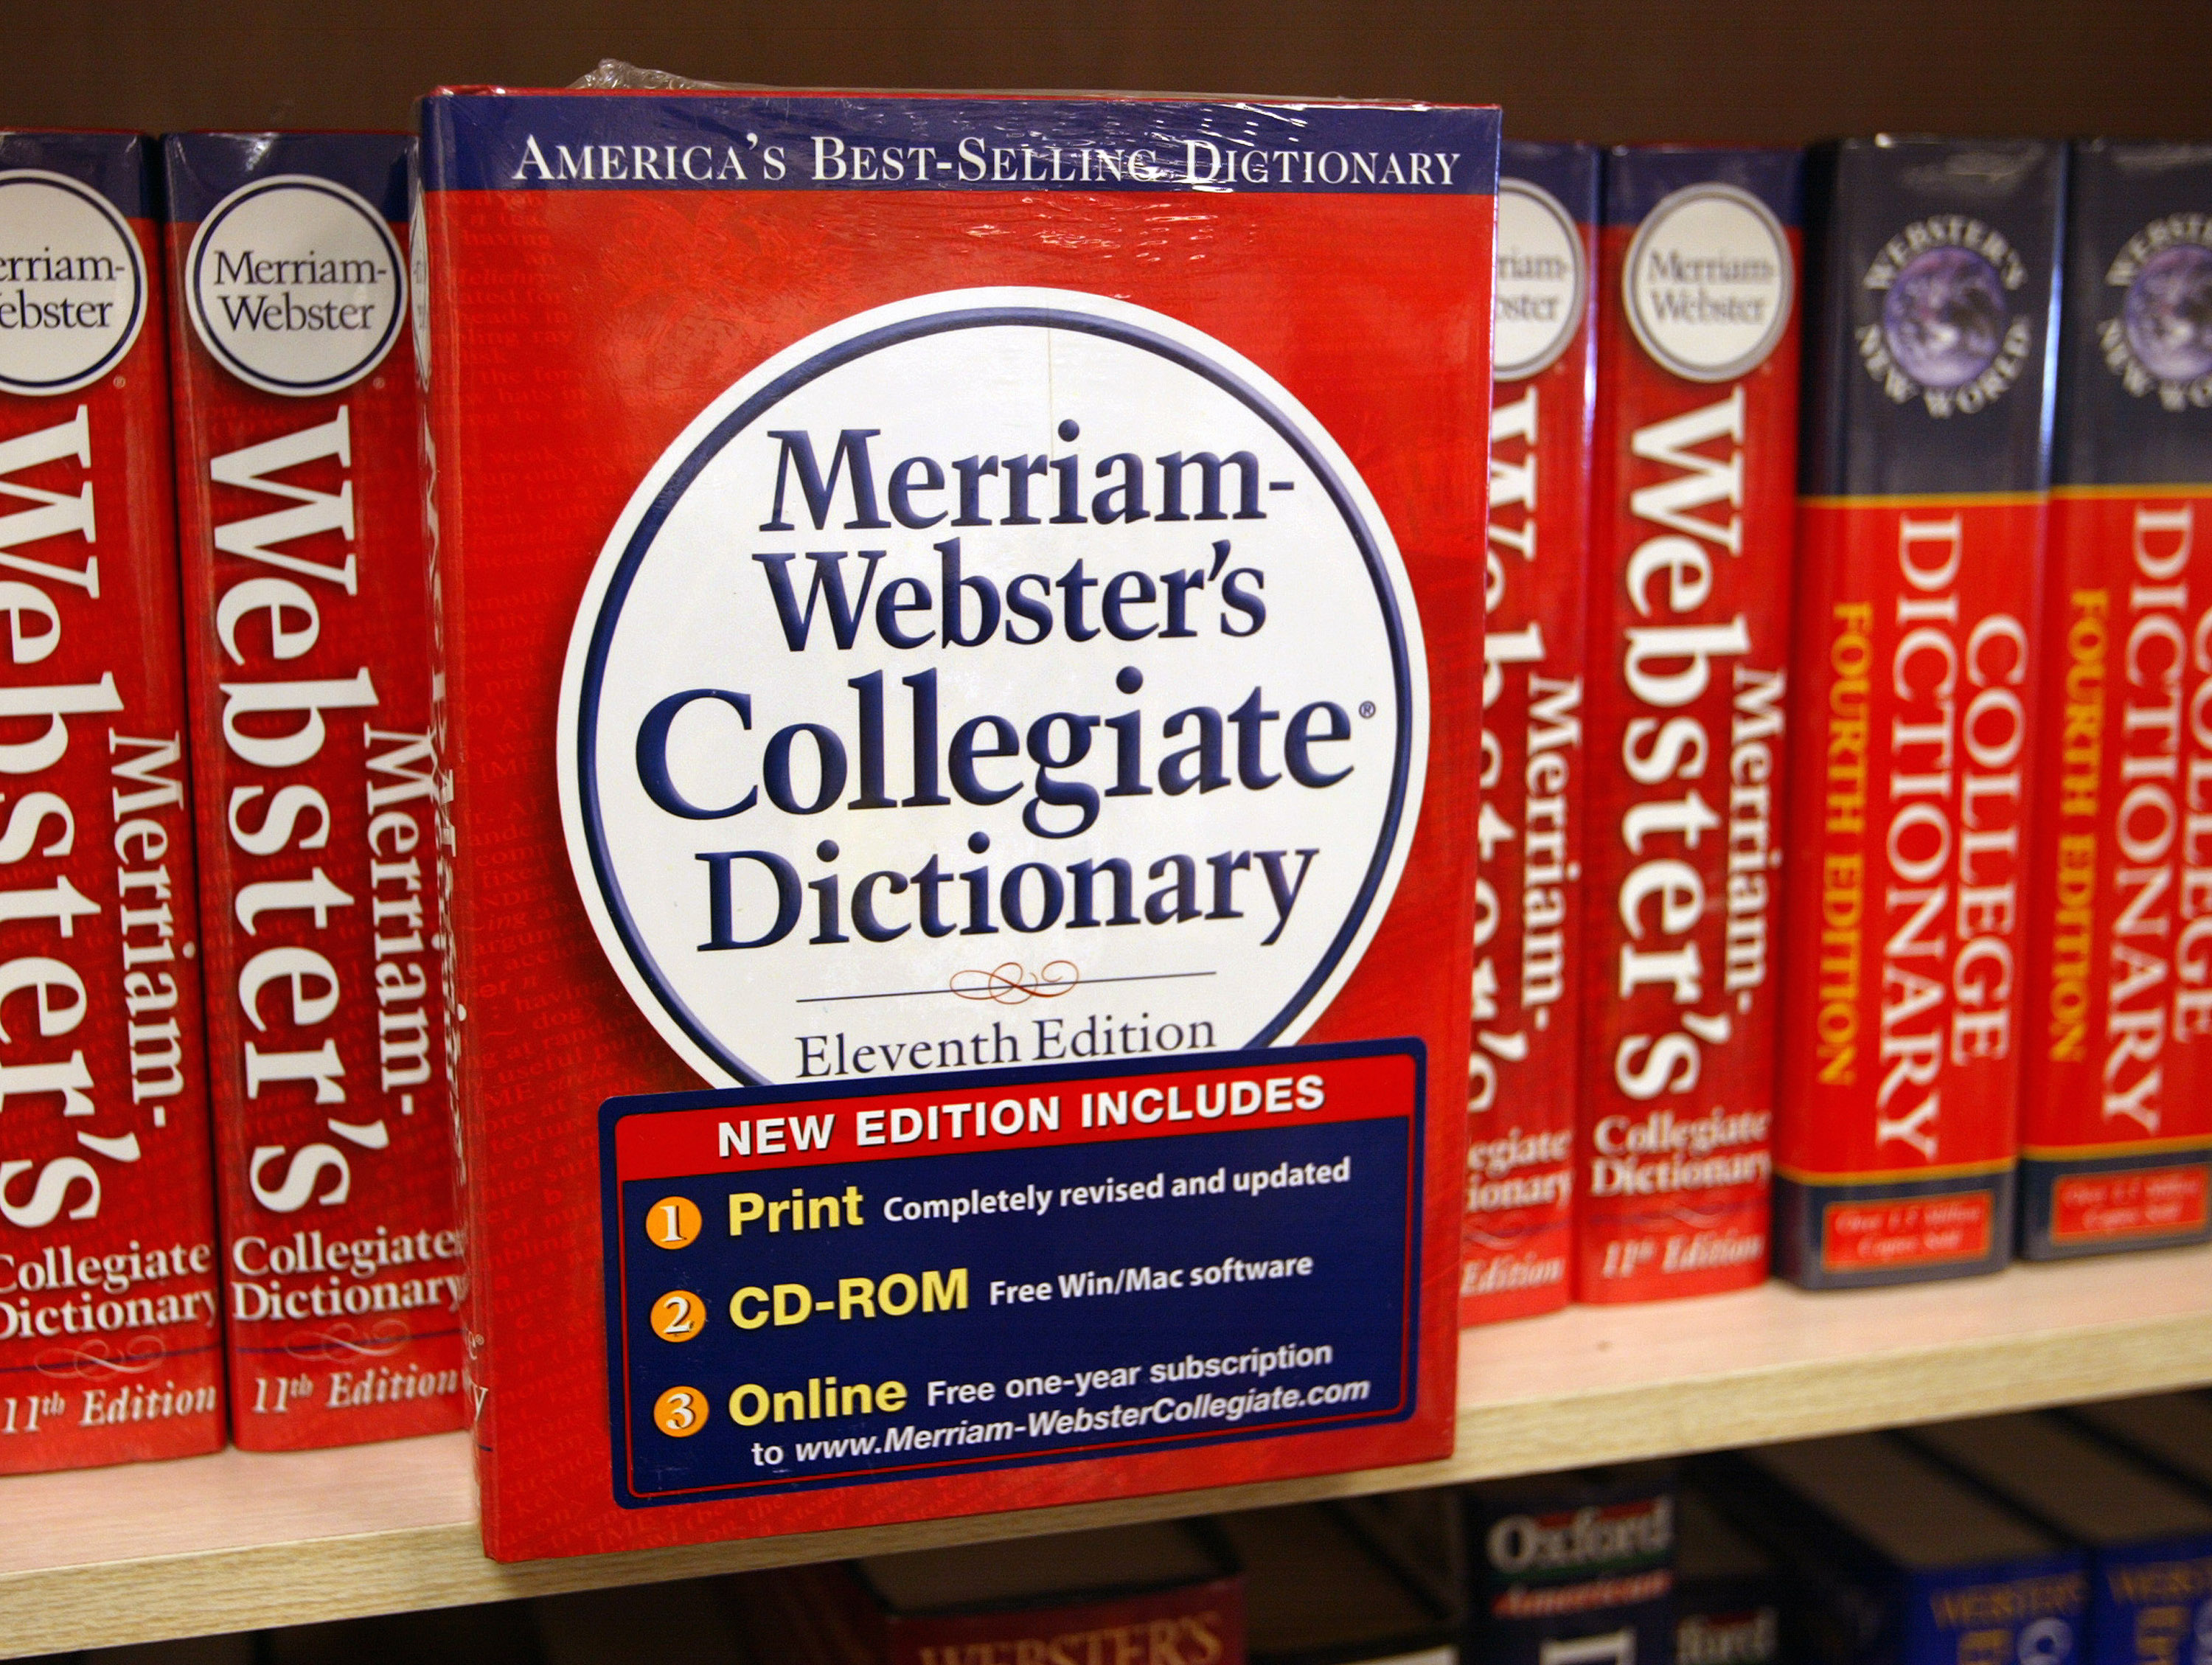 oxford dictionary vs webster dictionary